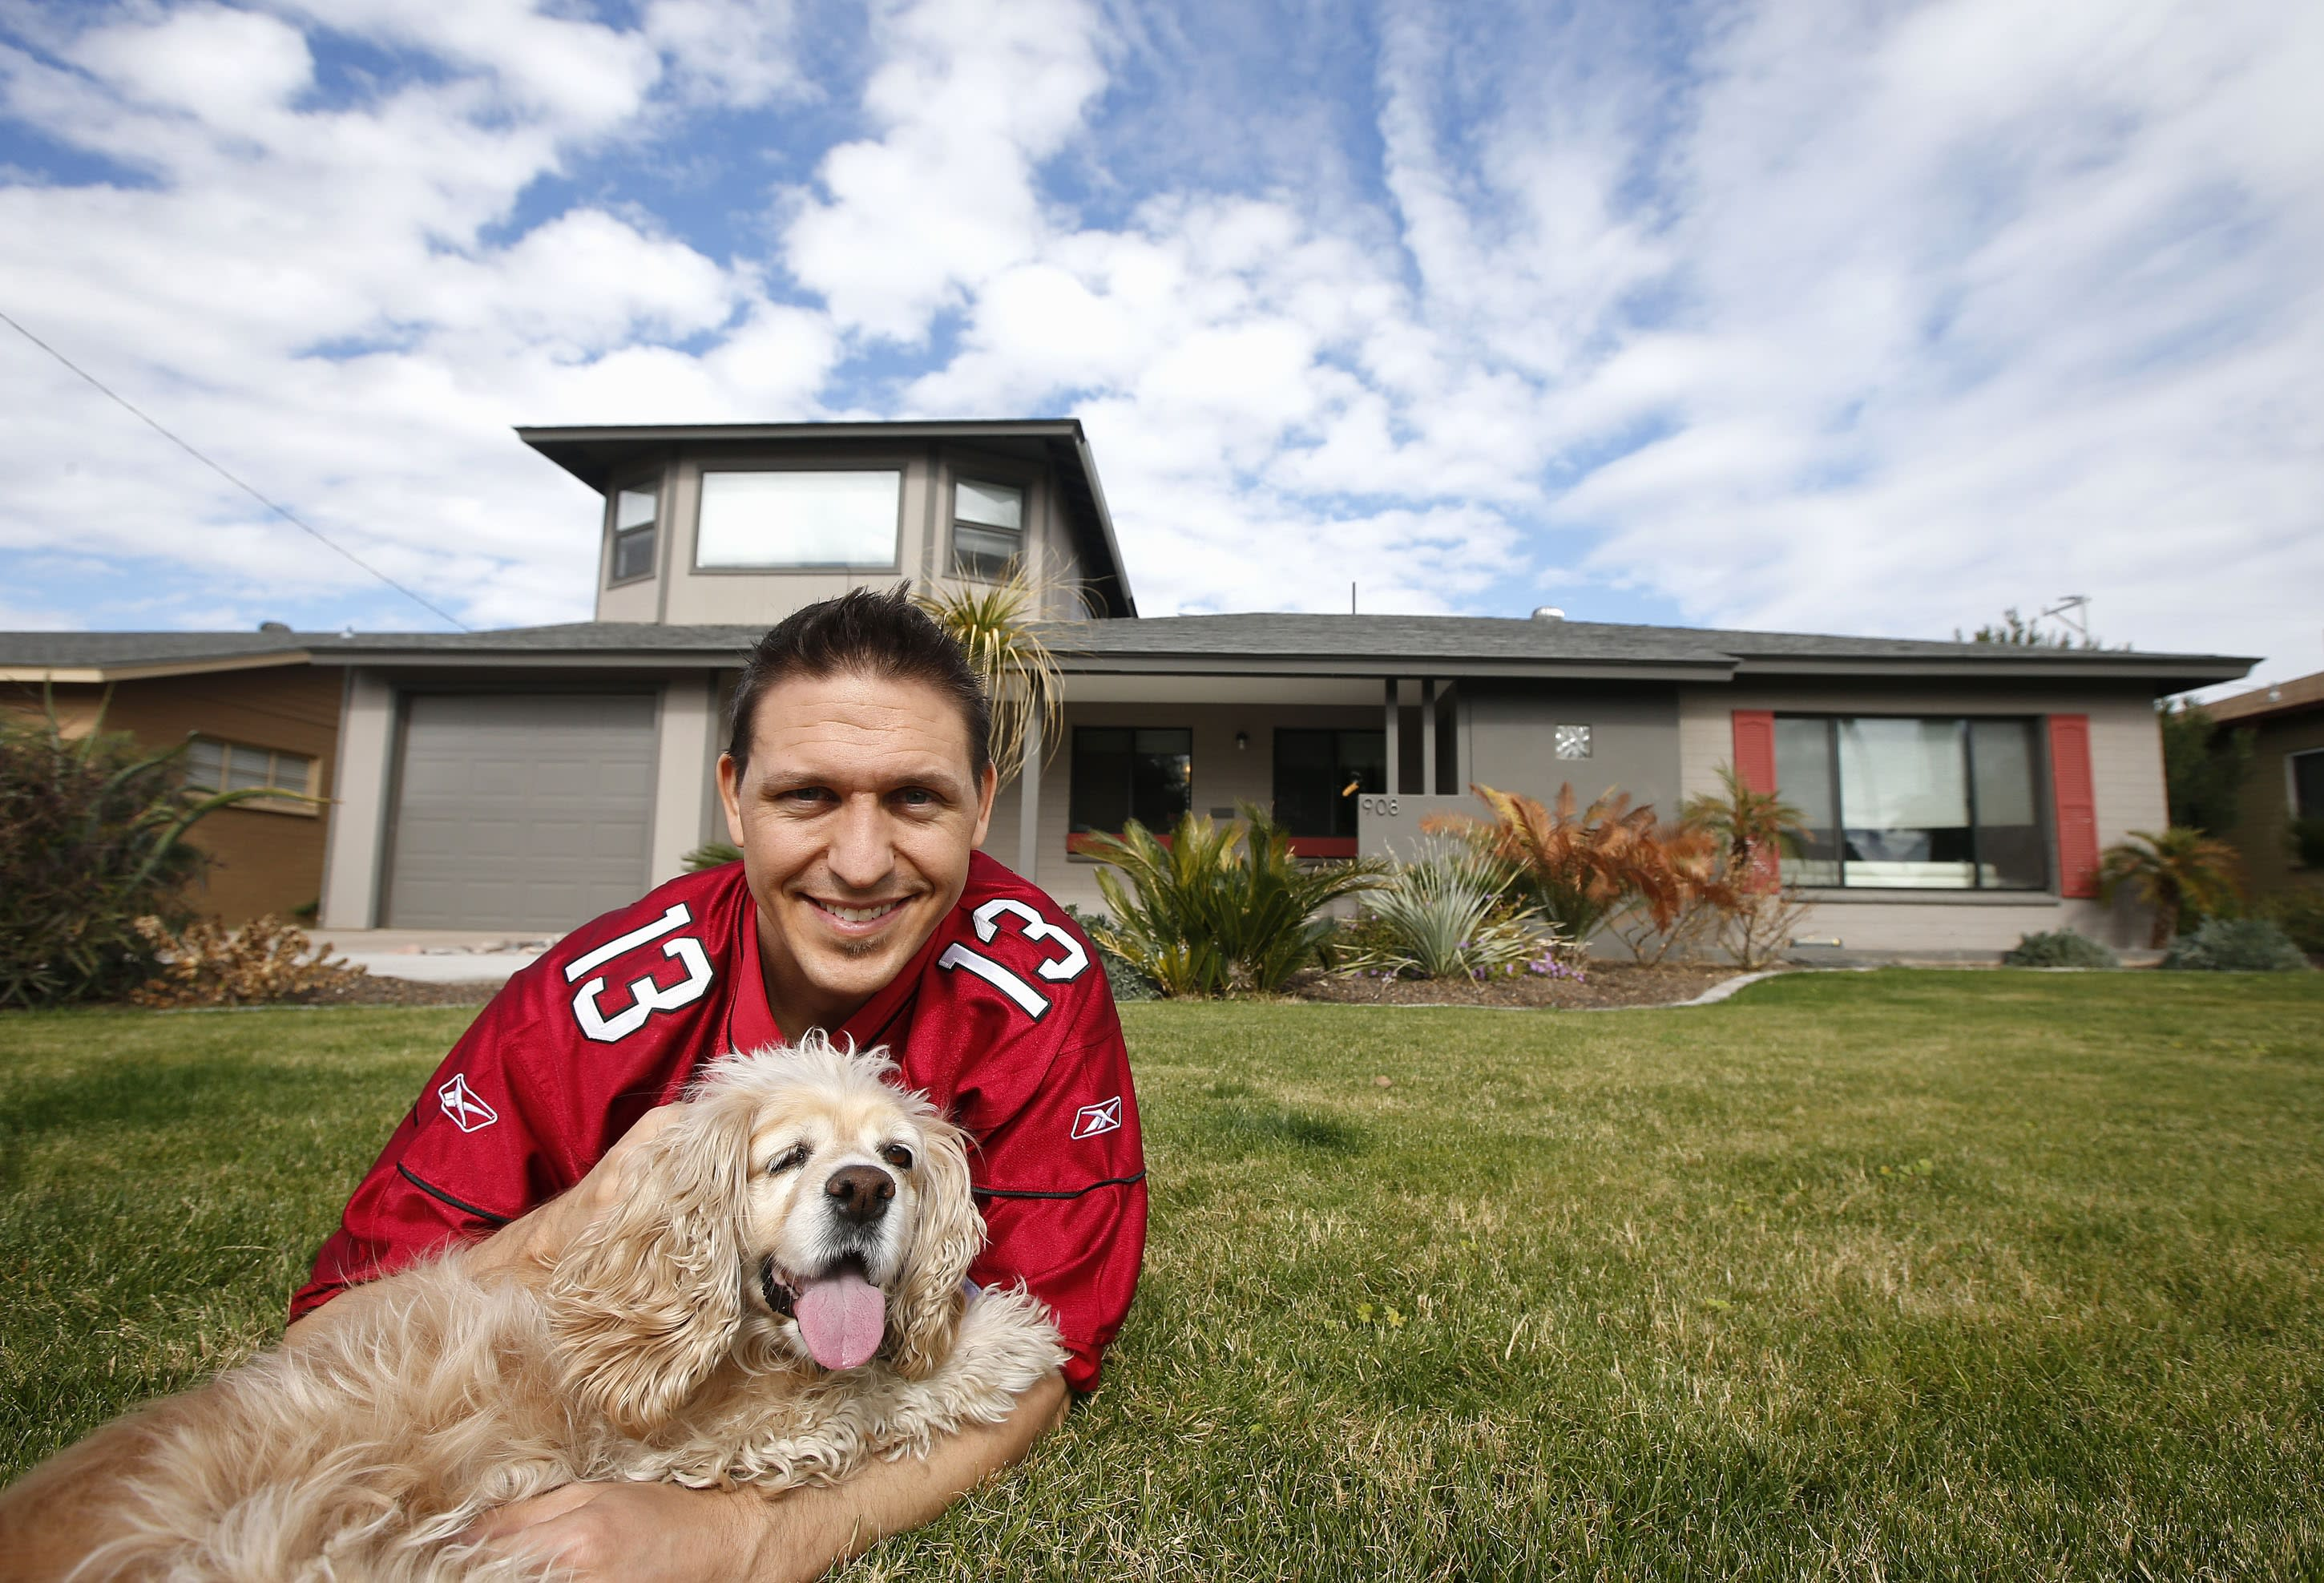 Renting out homes for Super Bowl can bring big bucks